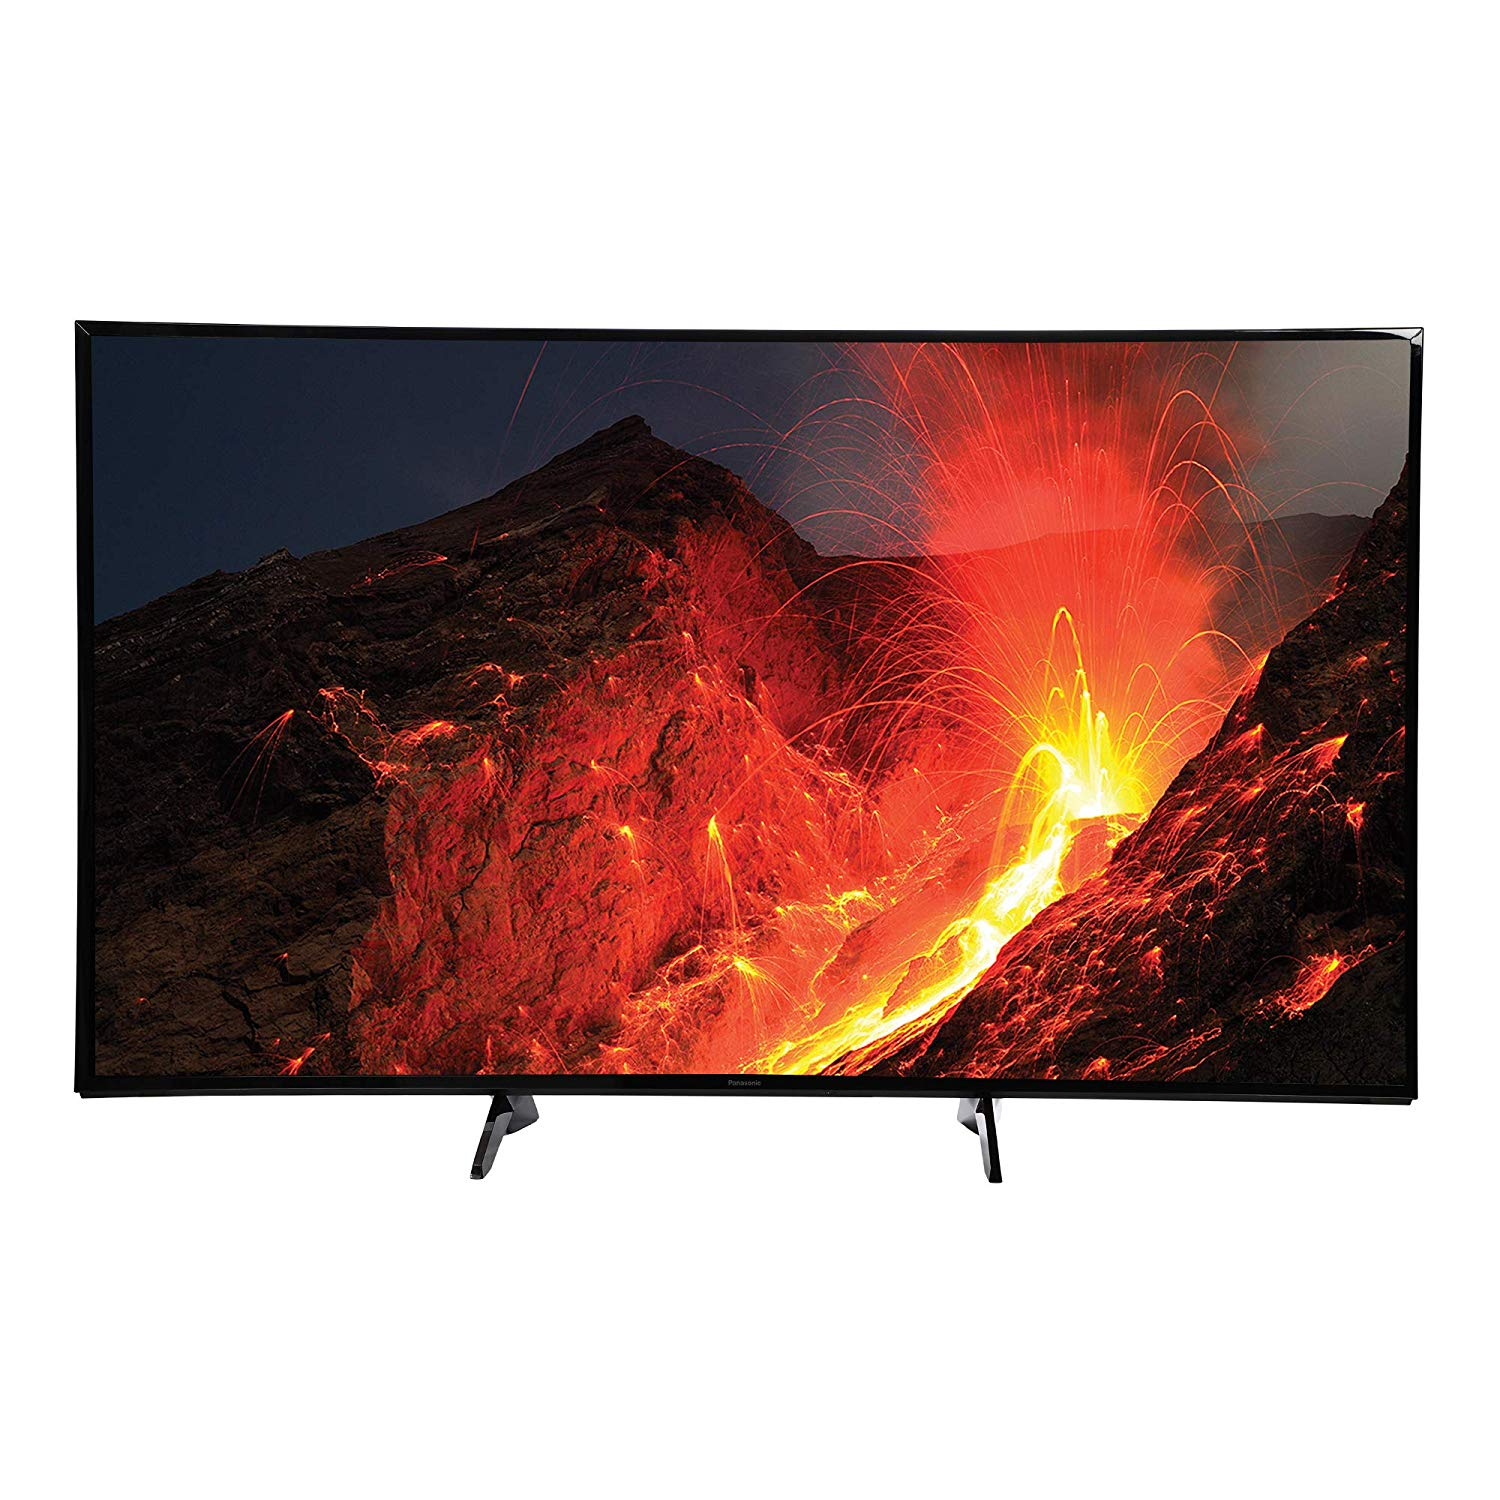 Panasonic TH-65FX600D LED Smart TV